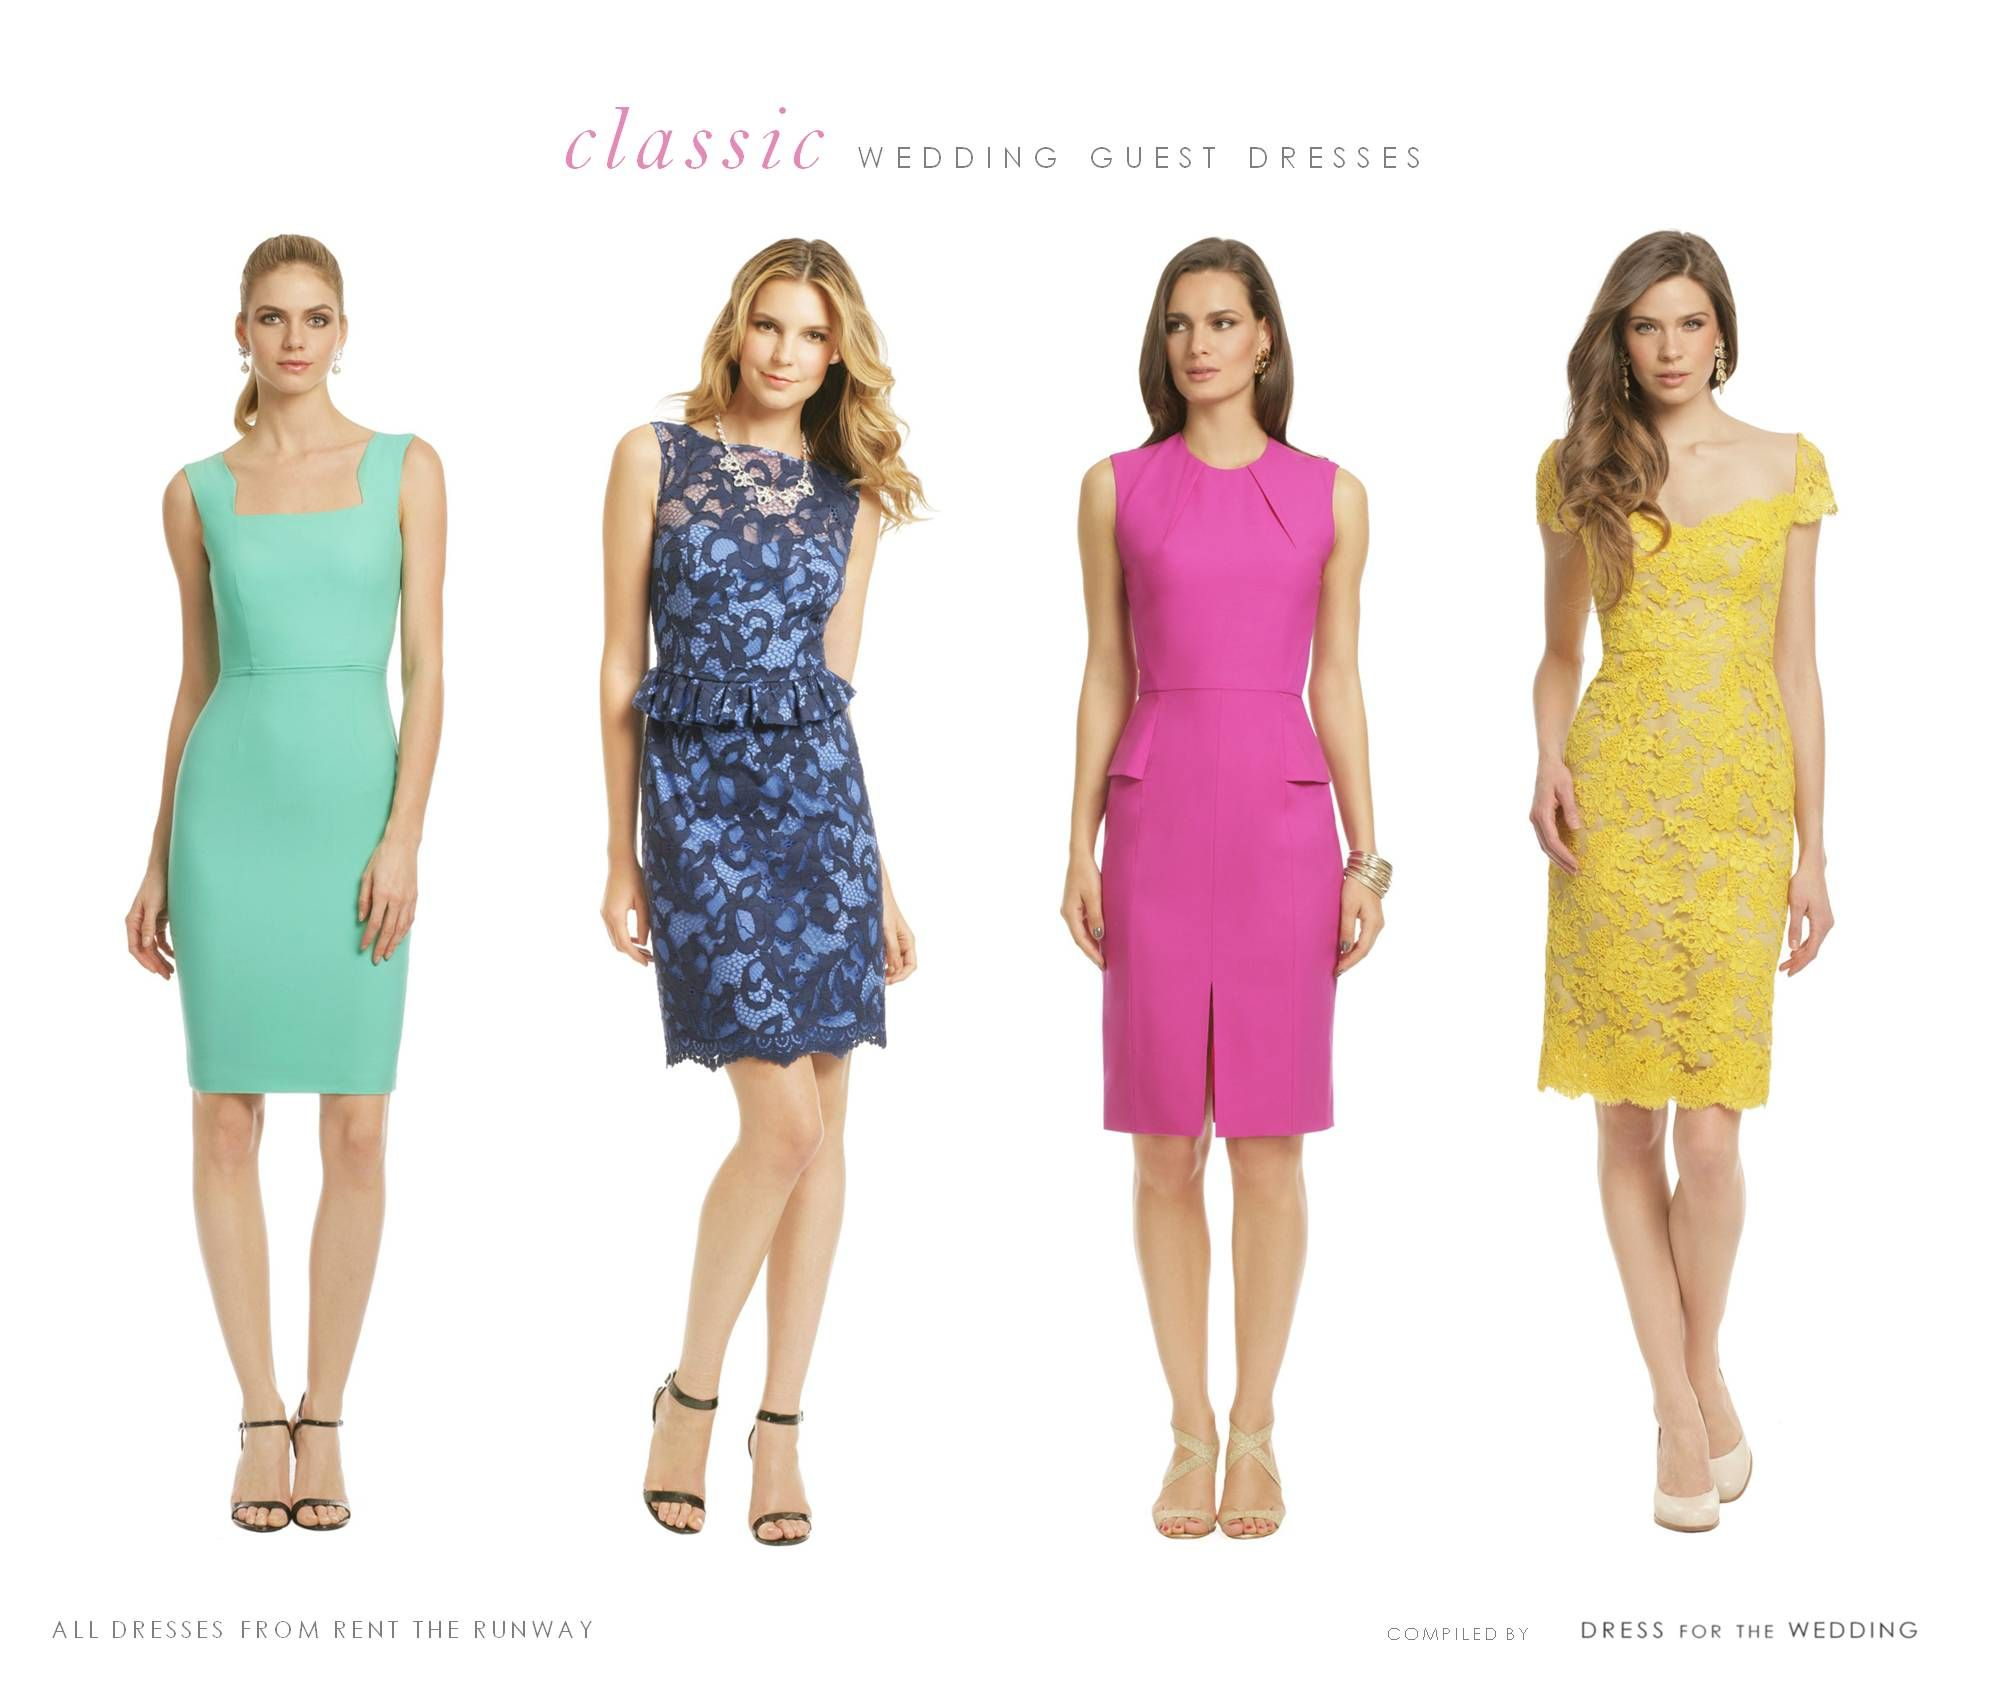 Summer Wedding Guest Dresses for Rent | Summer wedding guest ...